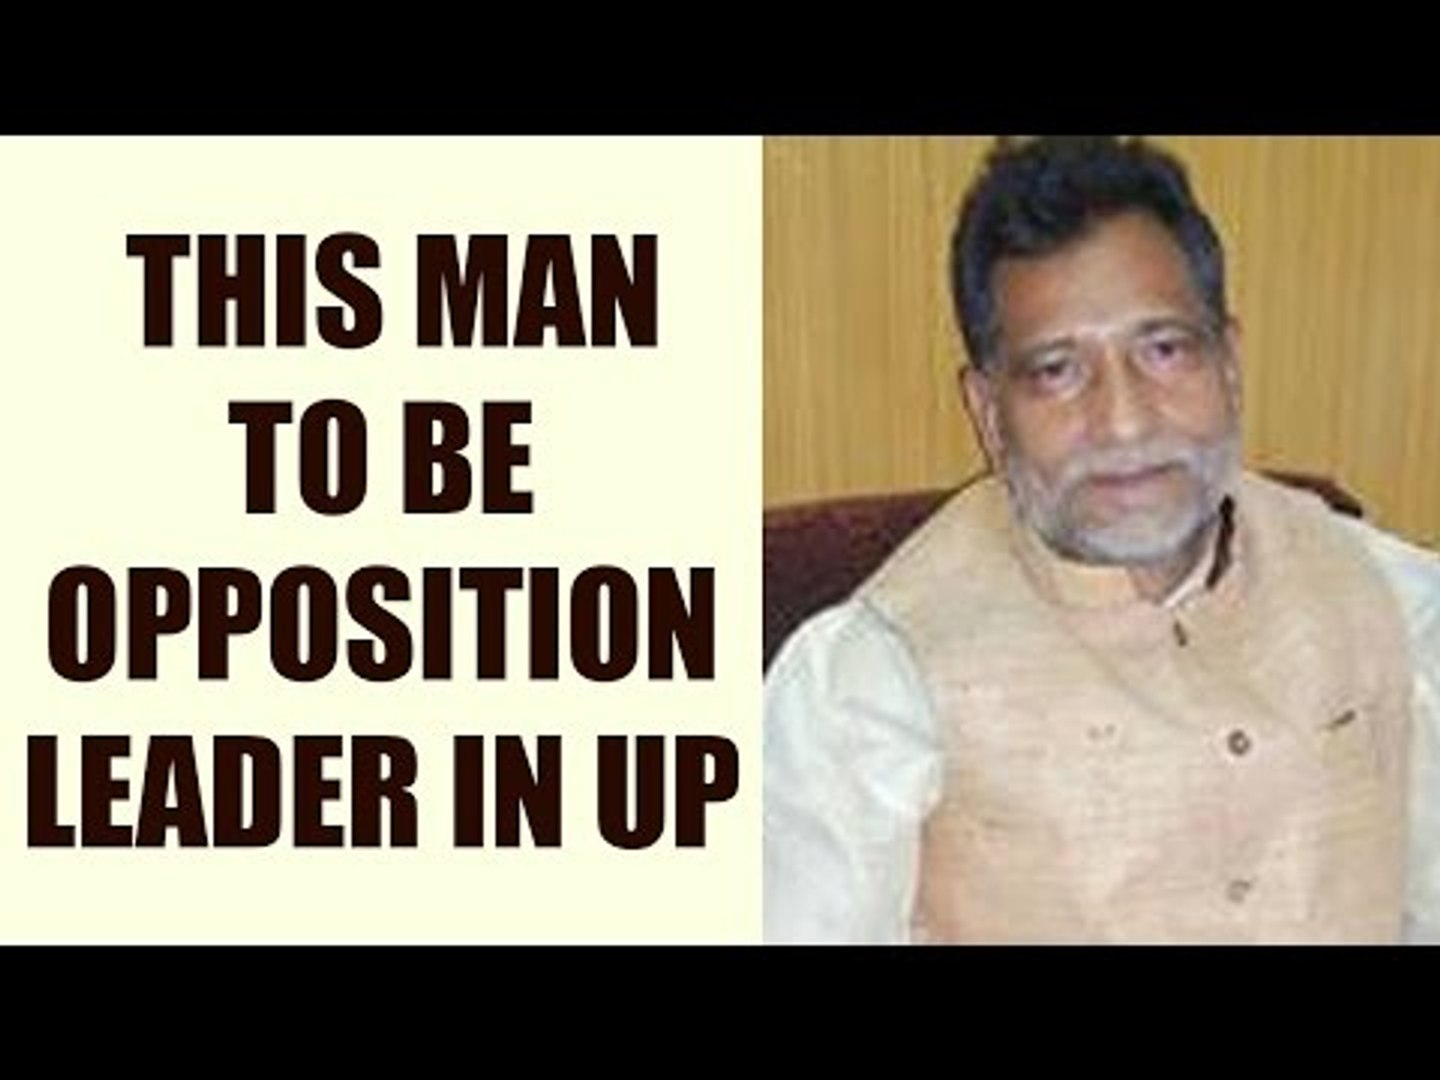 Akhilesh Yadav chooses Ram Govind Chaudhary as opposition leader in UP | Oneindia News